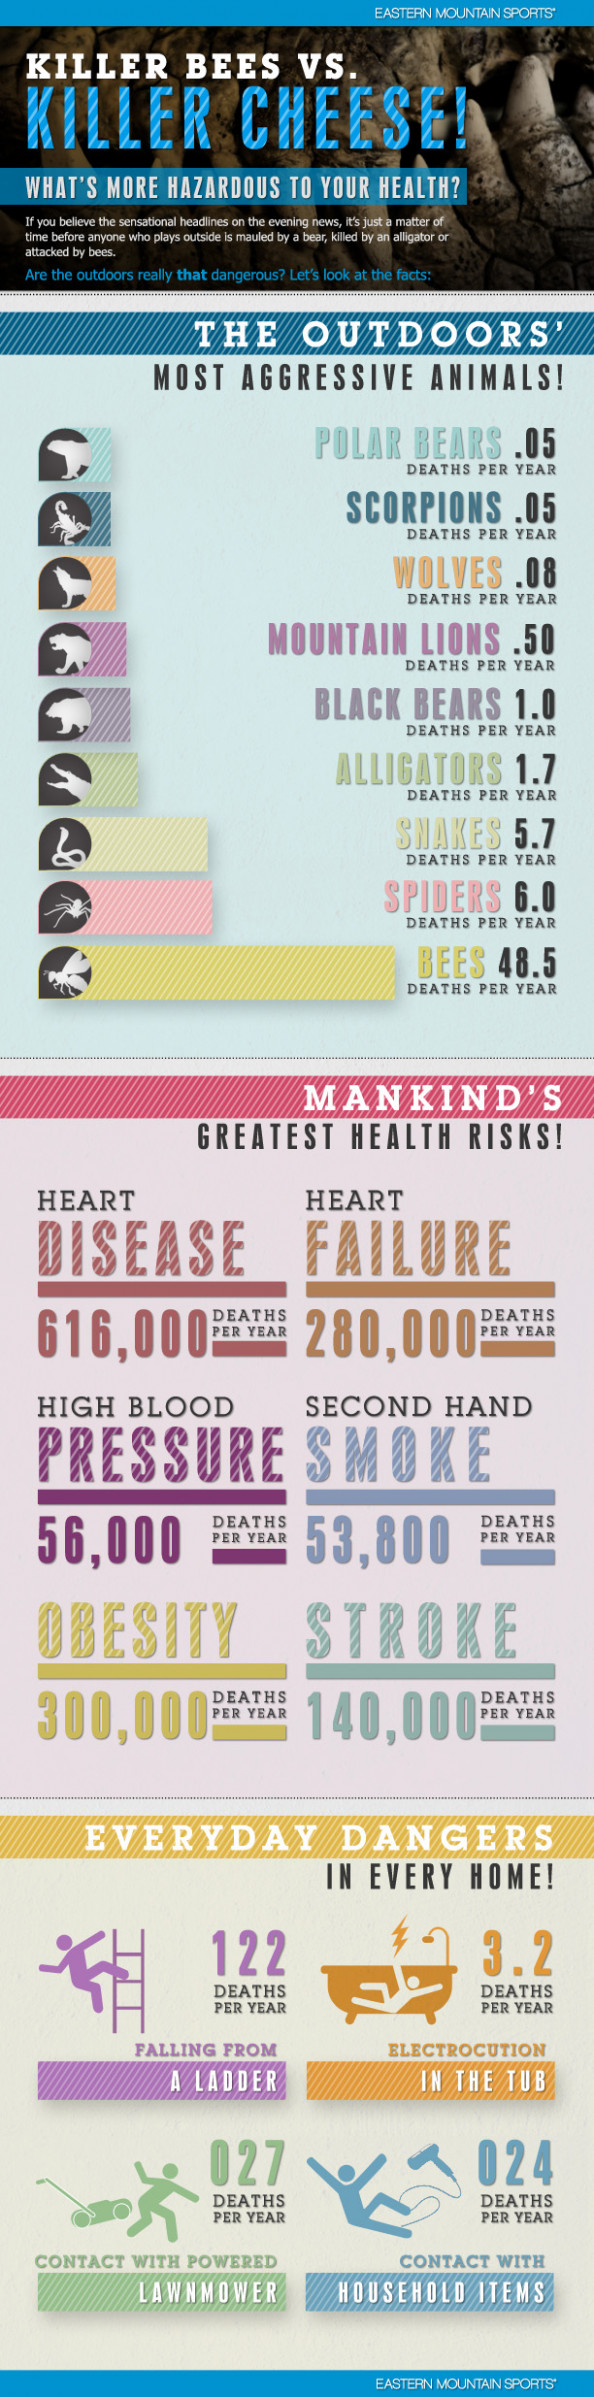 Killer Bees VS. Killer Cheese: Whats More Hazardous To Your Health?  Infographic